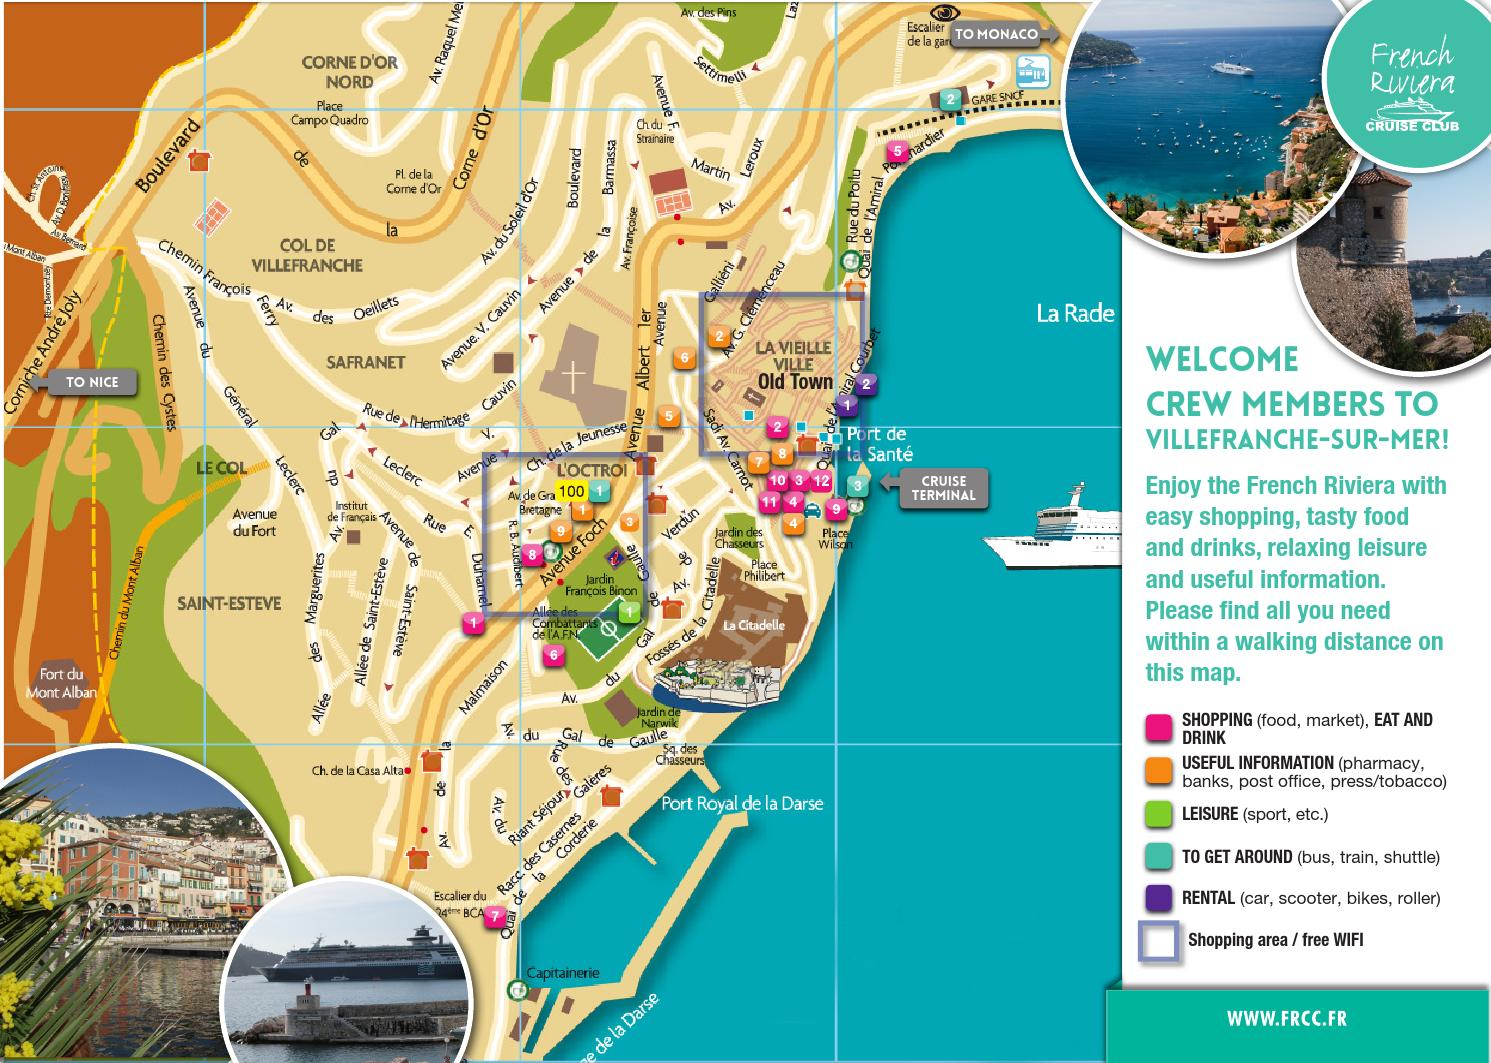 port of villefranche - tourist information guide for crew members by cci nice c u00f4te d u0026 39 azur